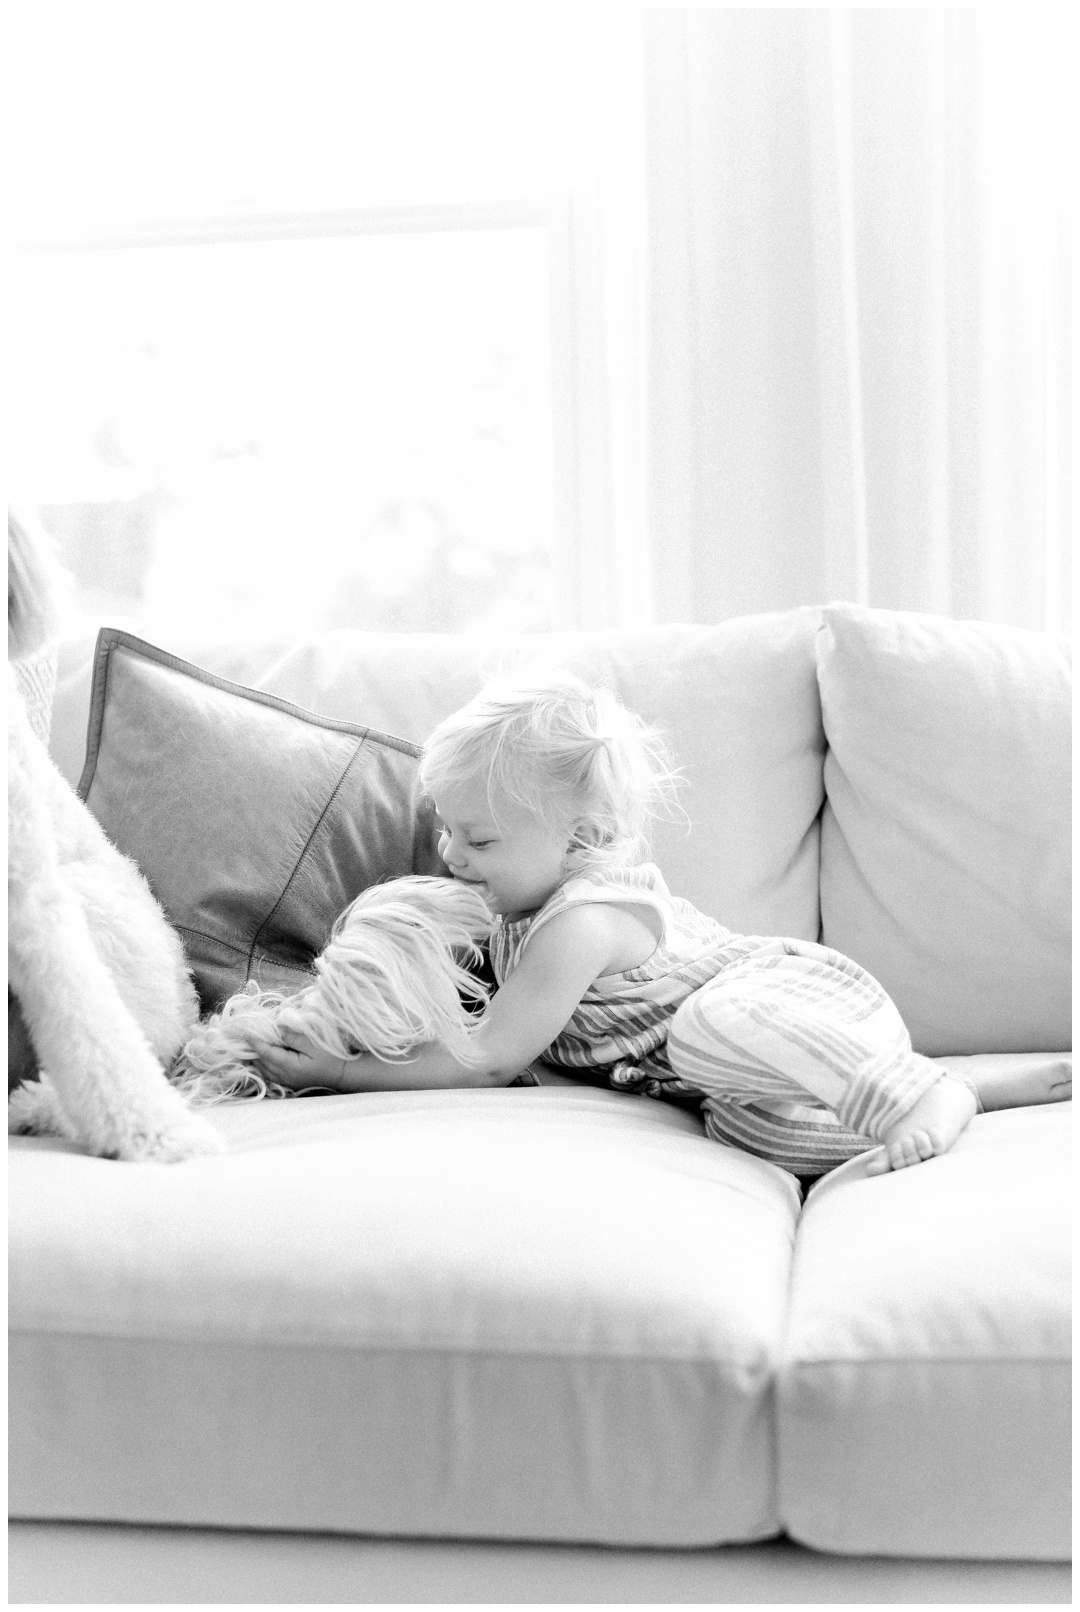 Newport_Beach_Lifestyle_in-Home_Photographer_Newport_Beach_In-Home_Photography_Orange_County_Photographer_Cori_Kleckner_Photography_Orange_County_in-home_Photography_Kristin_Dinsmore_Family_session_1906.jpg